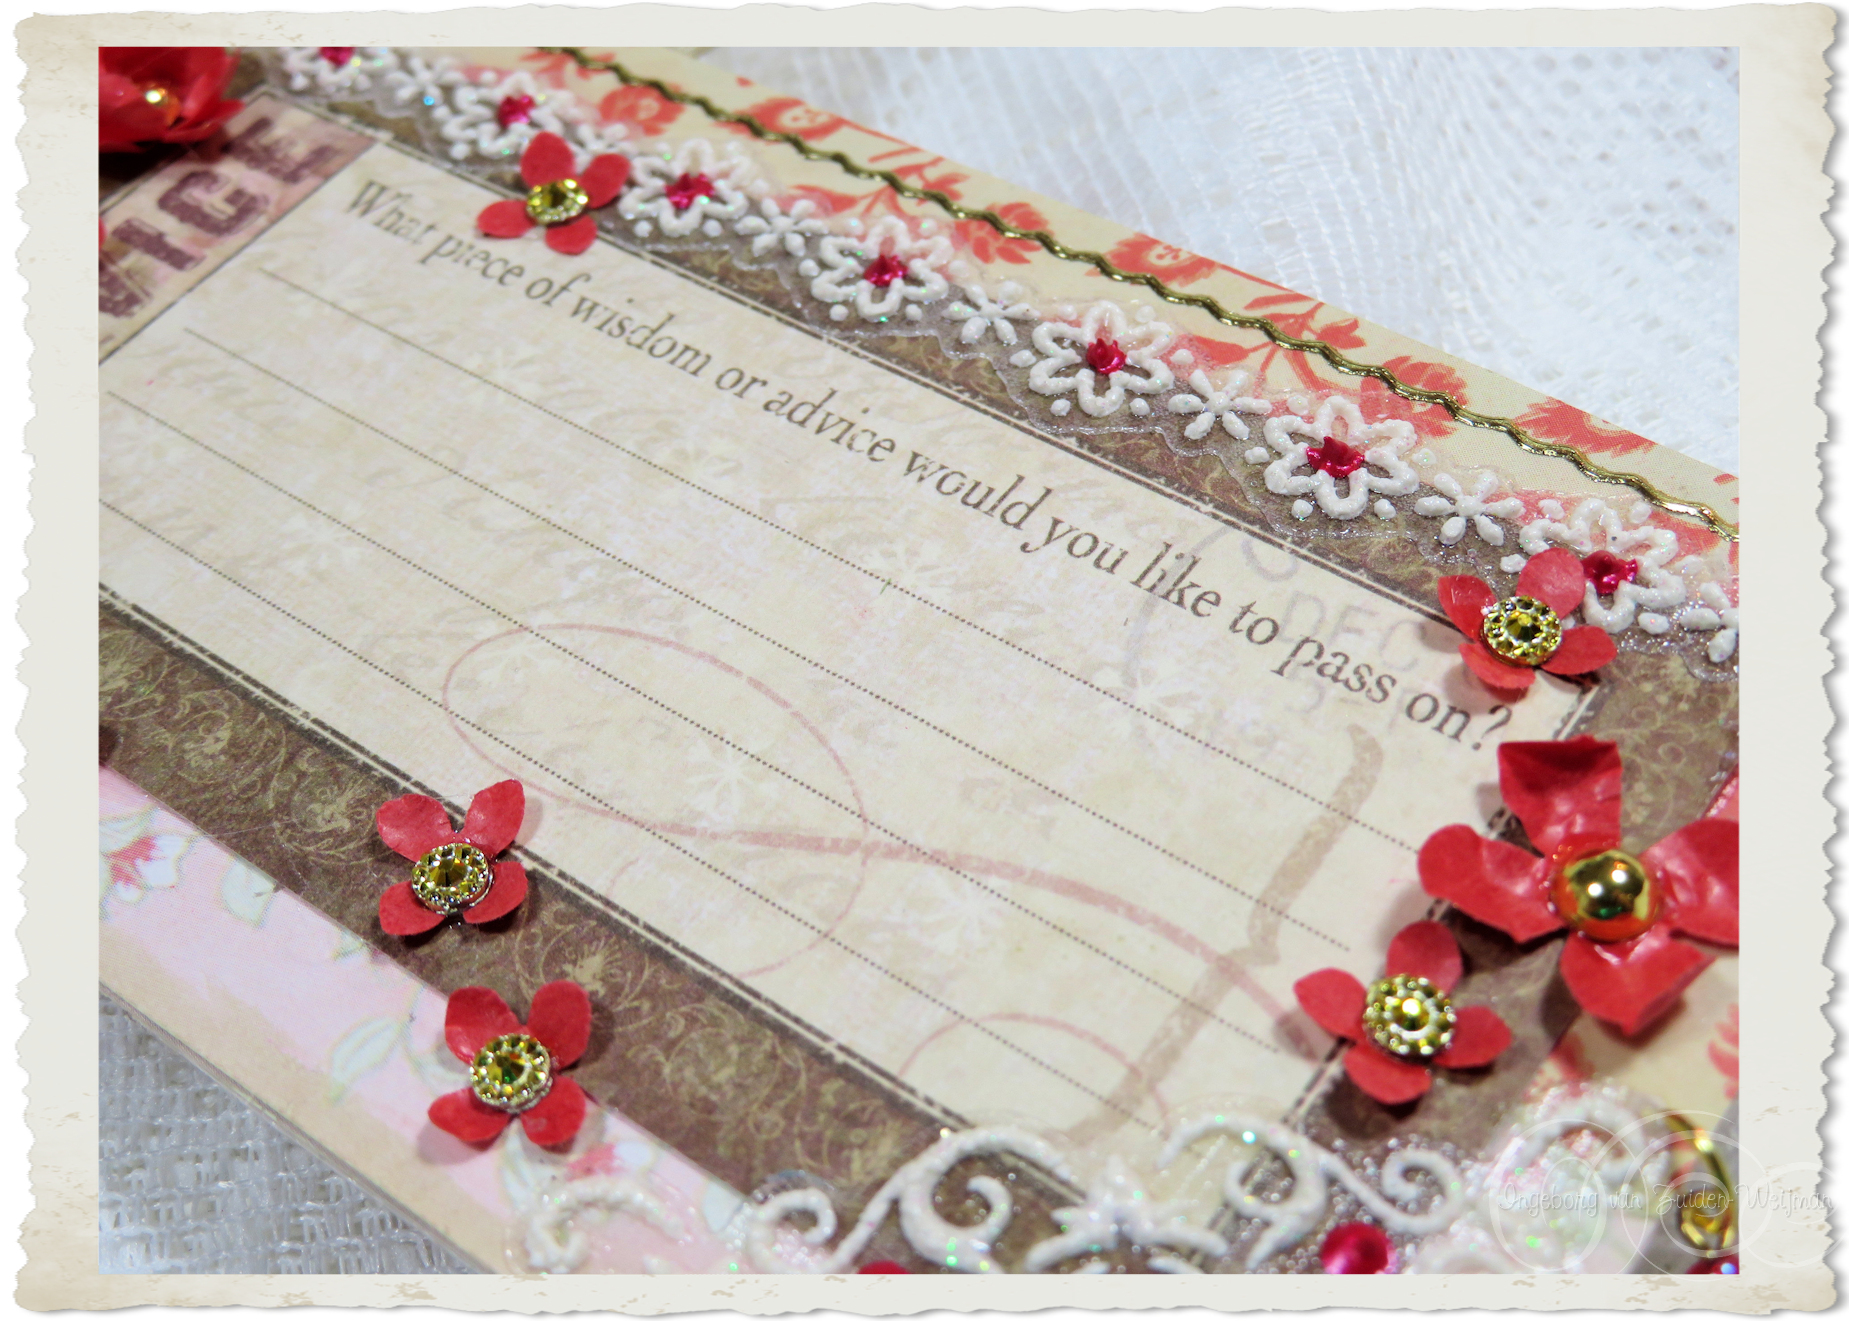 Details of flowers on backside of handmade tag